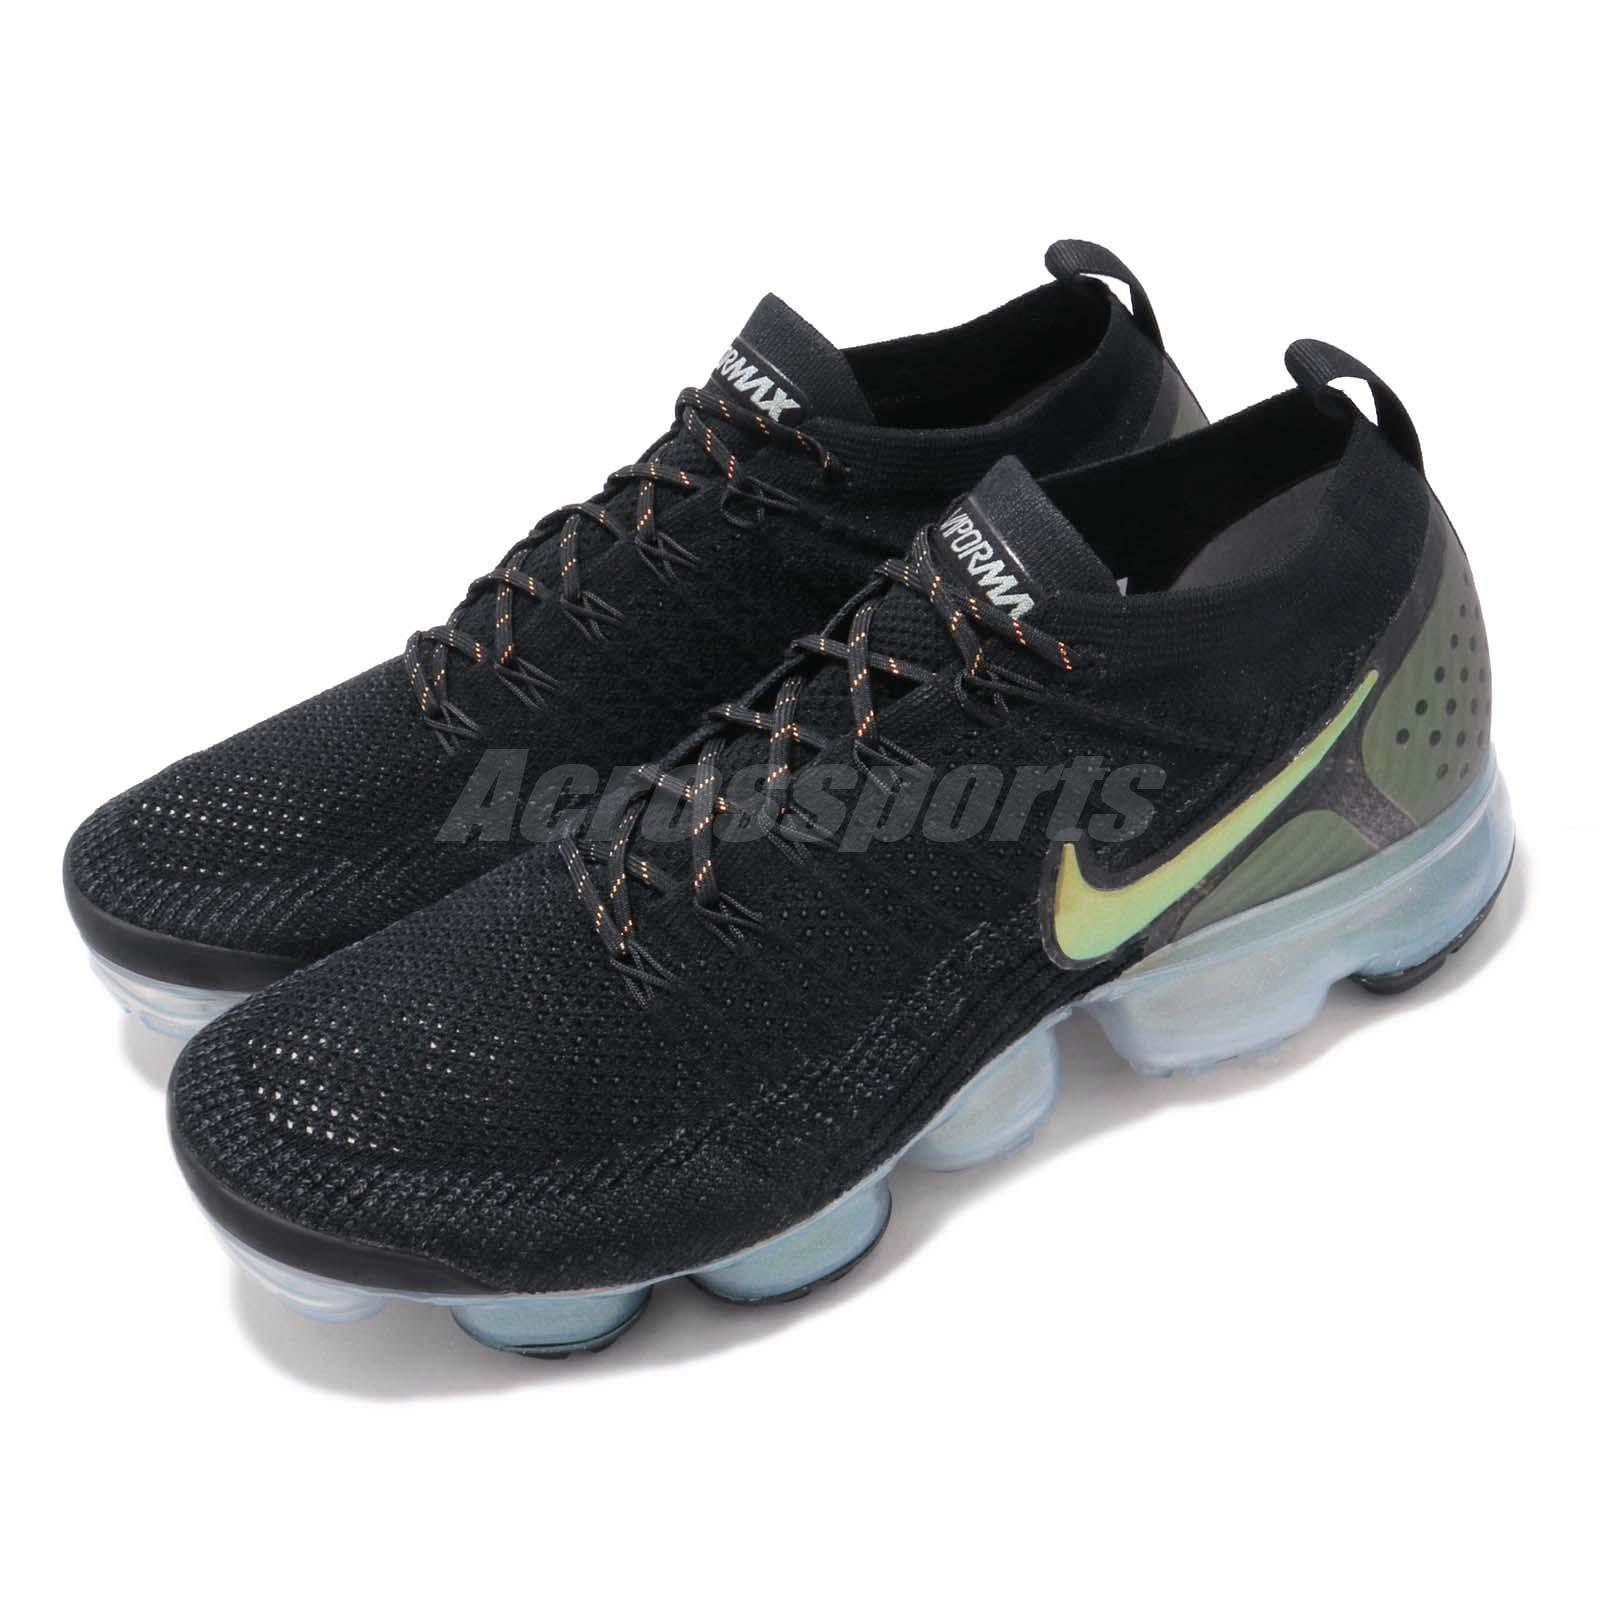 half off 57b71 976e5 Details about Nike Air Vapormax Flyknit 2 Black Gold Men Running Shoes  Sneakers 942842-015